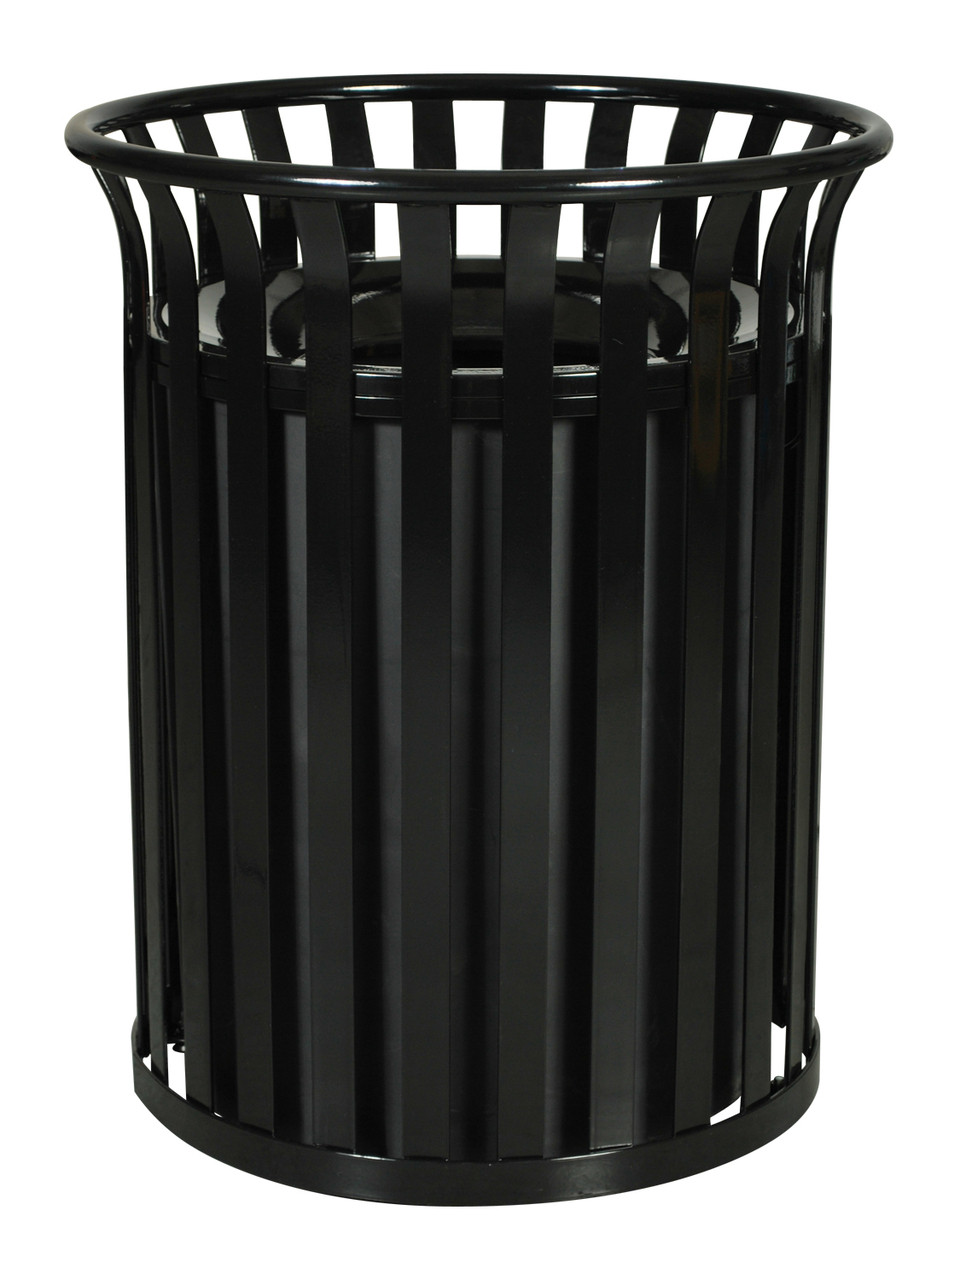 37 Gallon Metal Outdoor Street Scape Trash Can Black